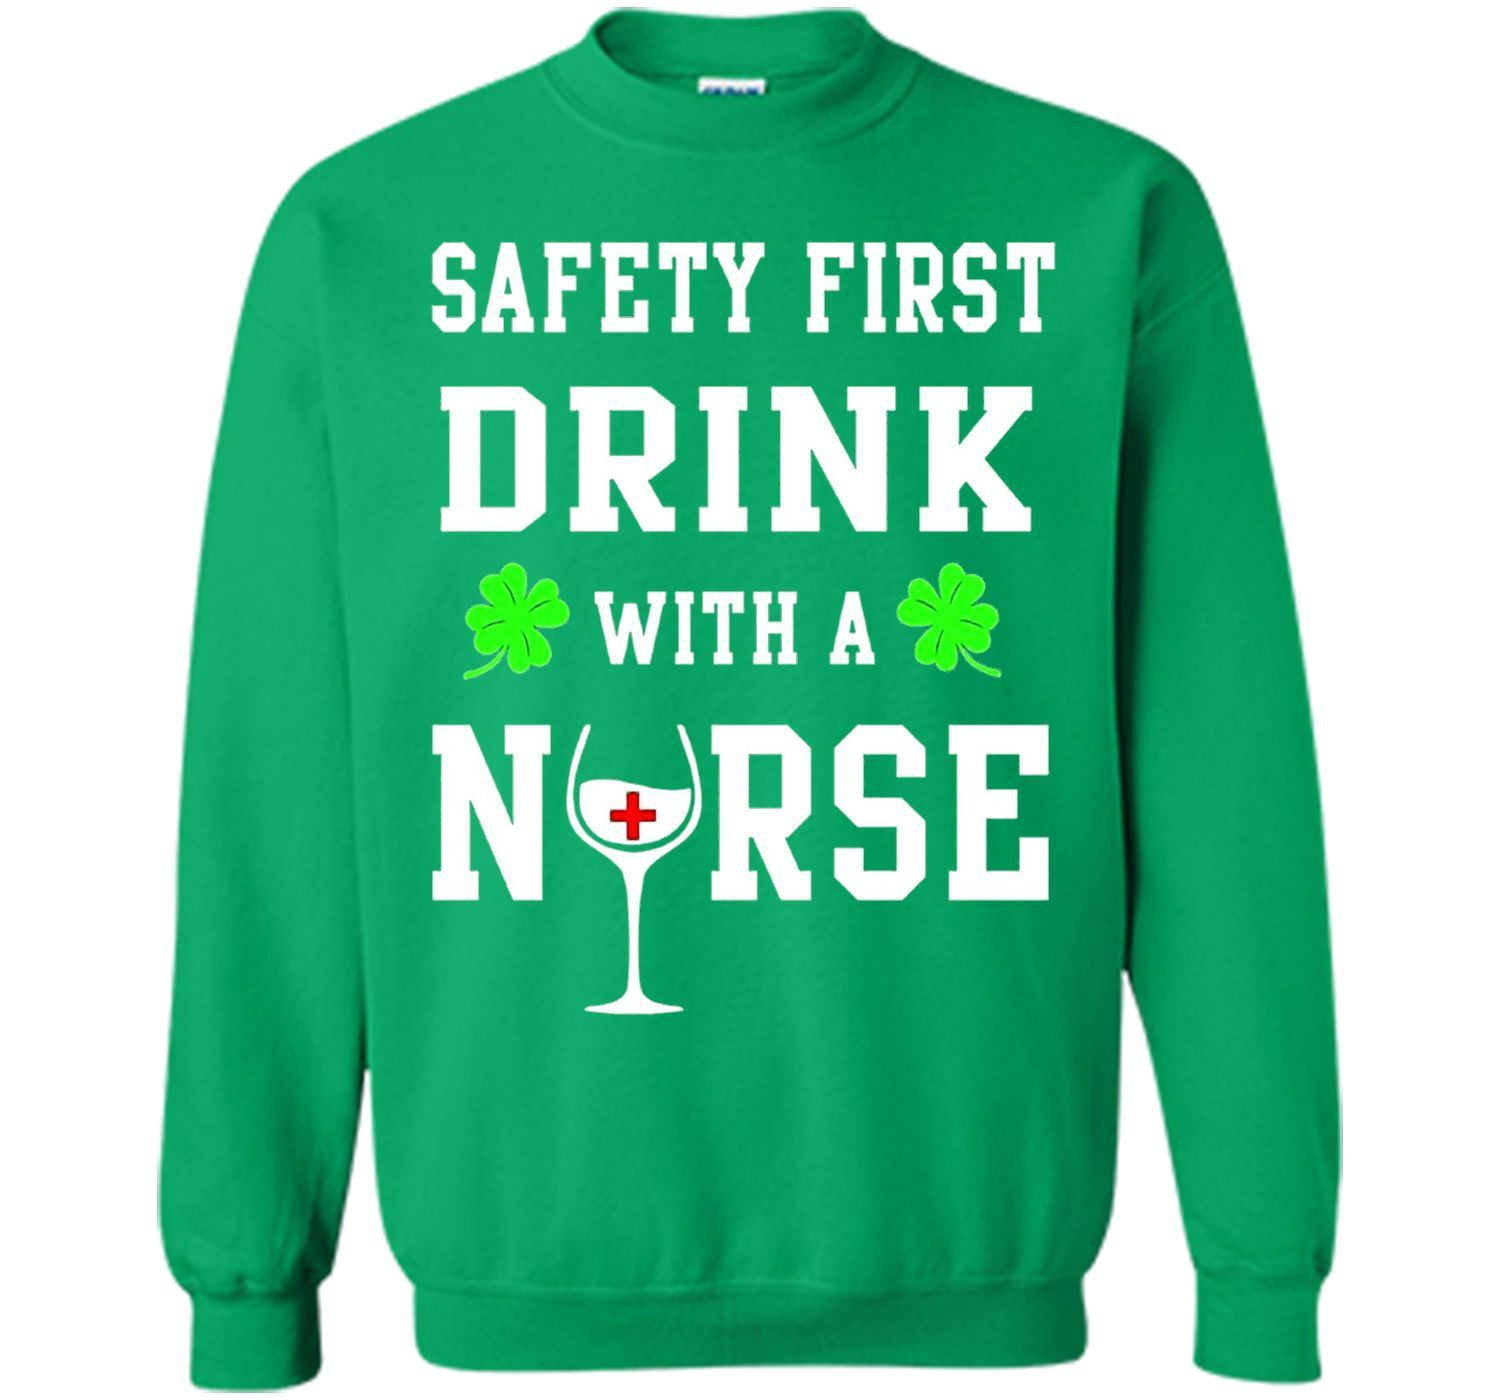 Safety First Drink With A Nurse Shirt St Patricks Day